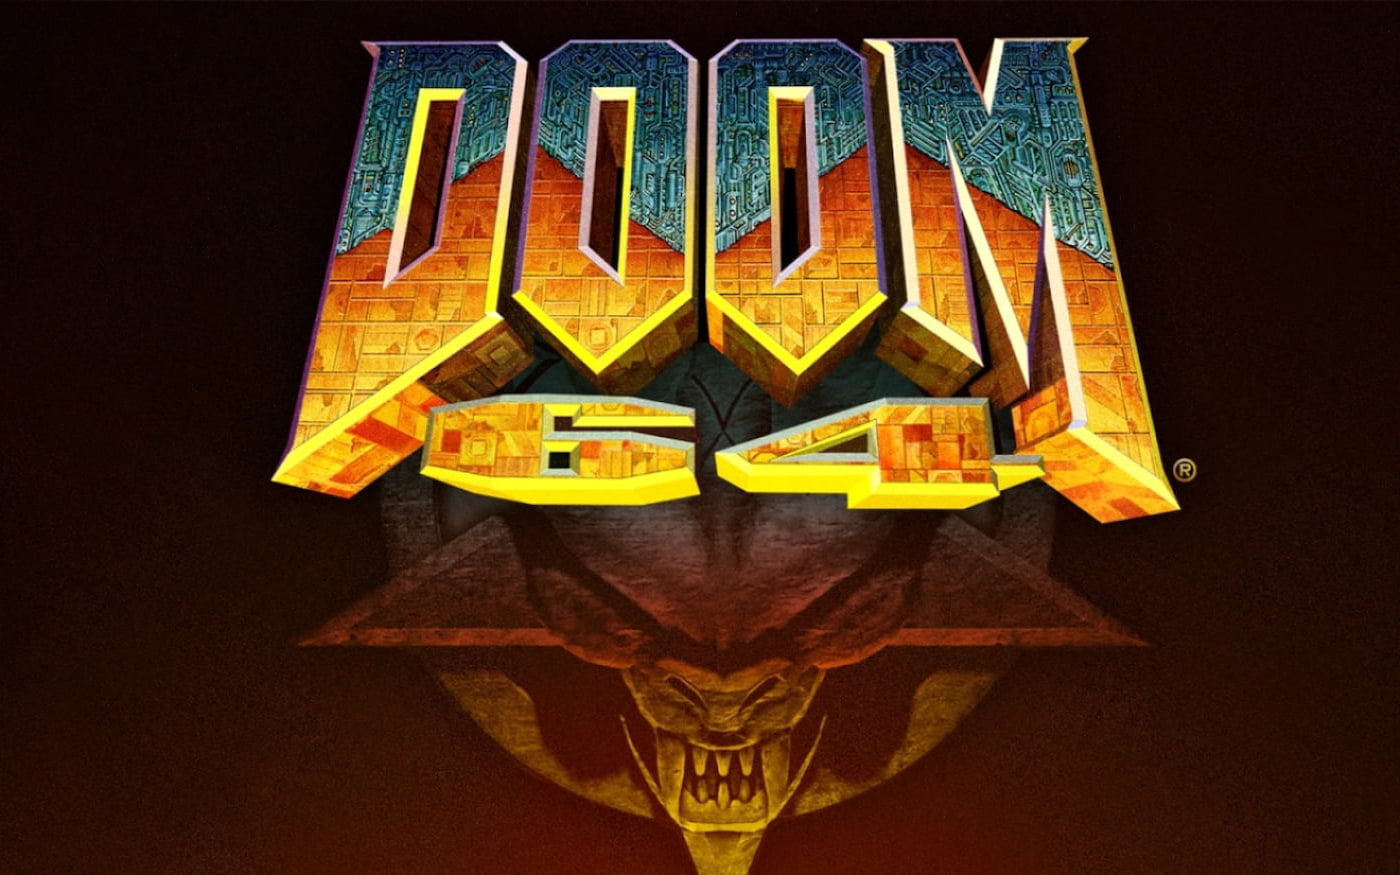 [DOOM 64] Bethesda publica trailer do jogo que virá como bônus de DOOM Eternal